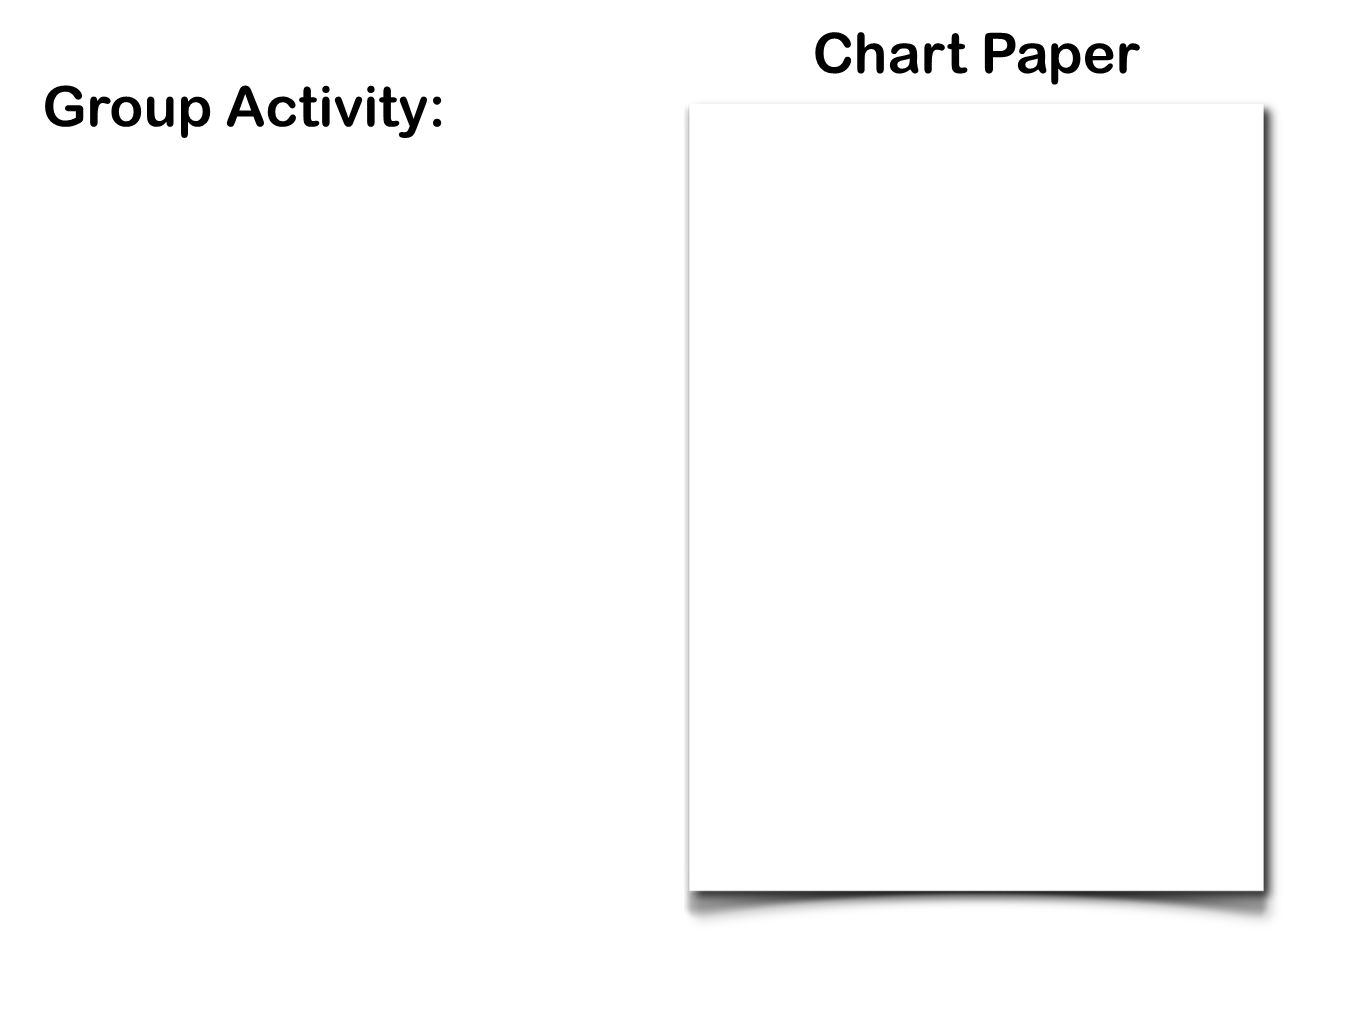 Chart Paper Group Activity: